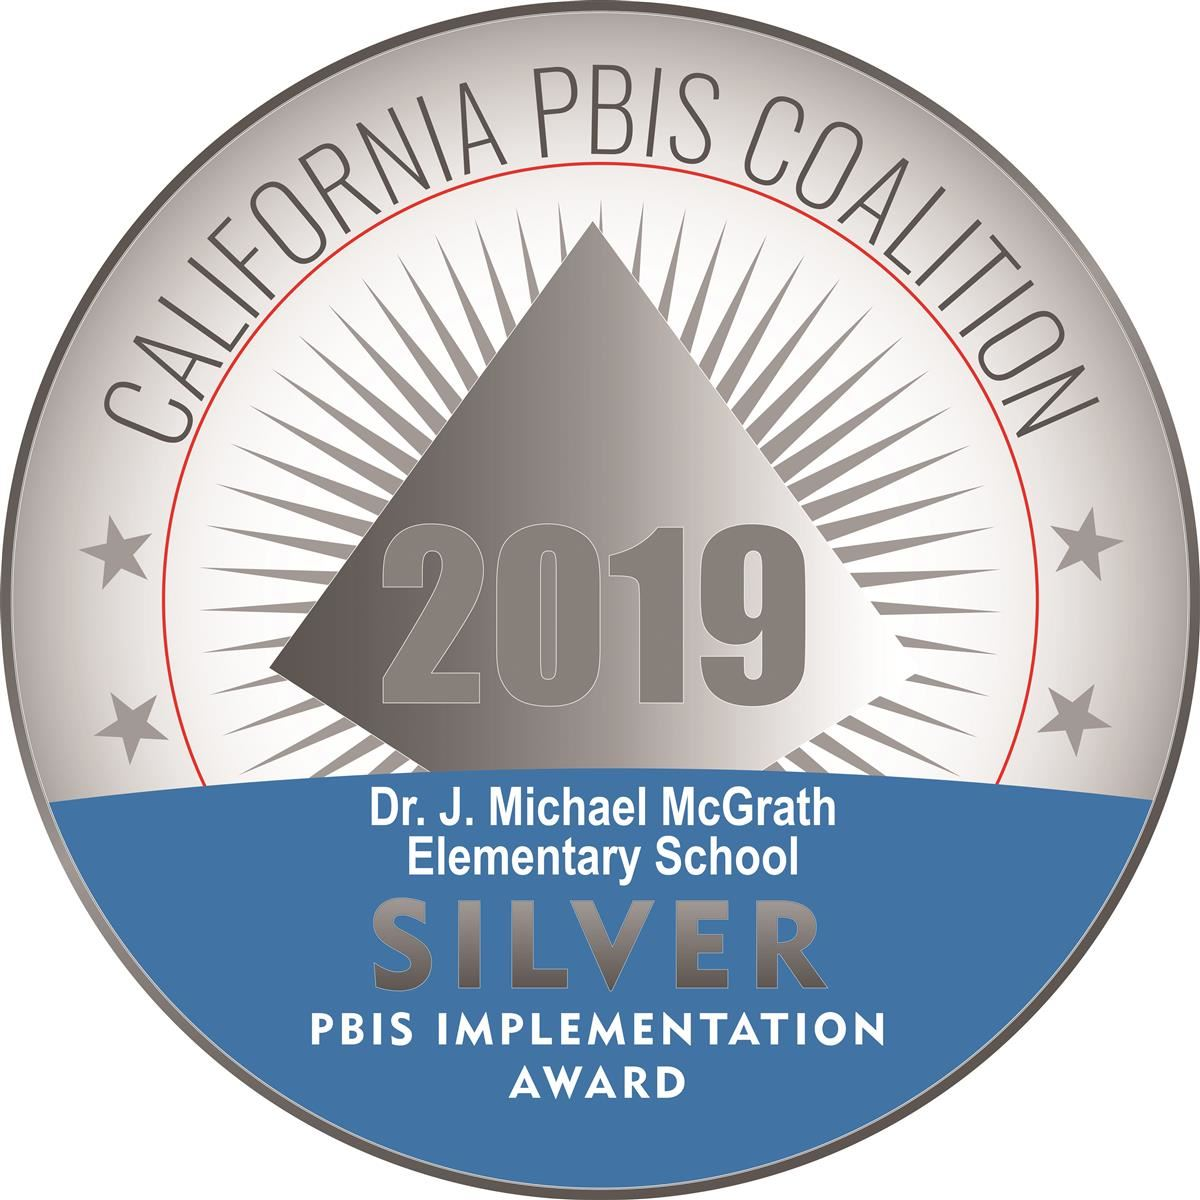 California PBIS Coalition